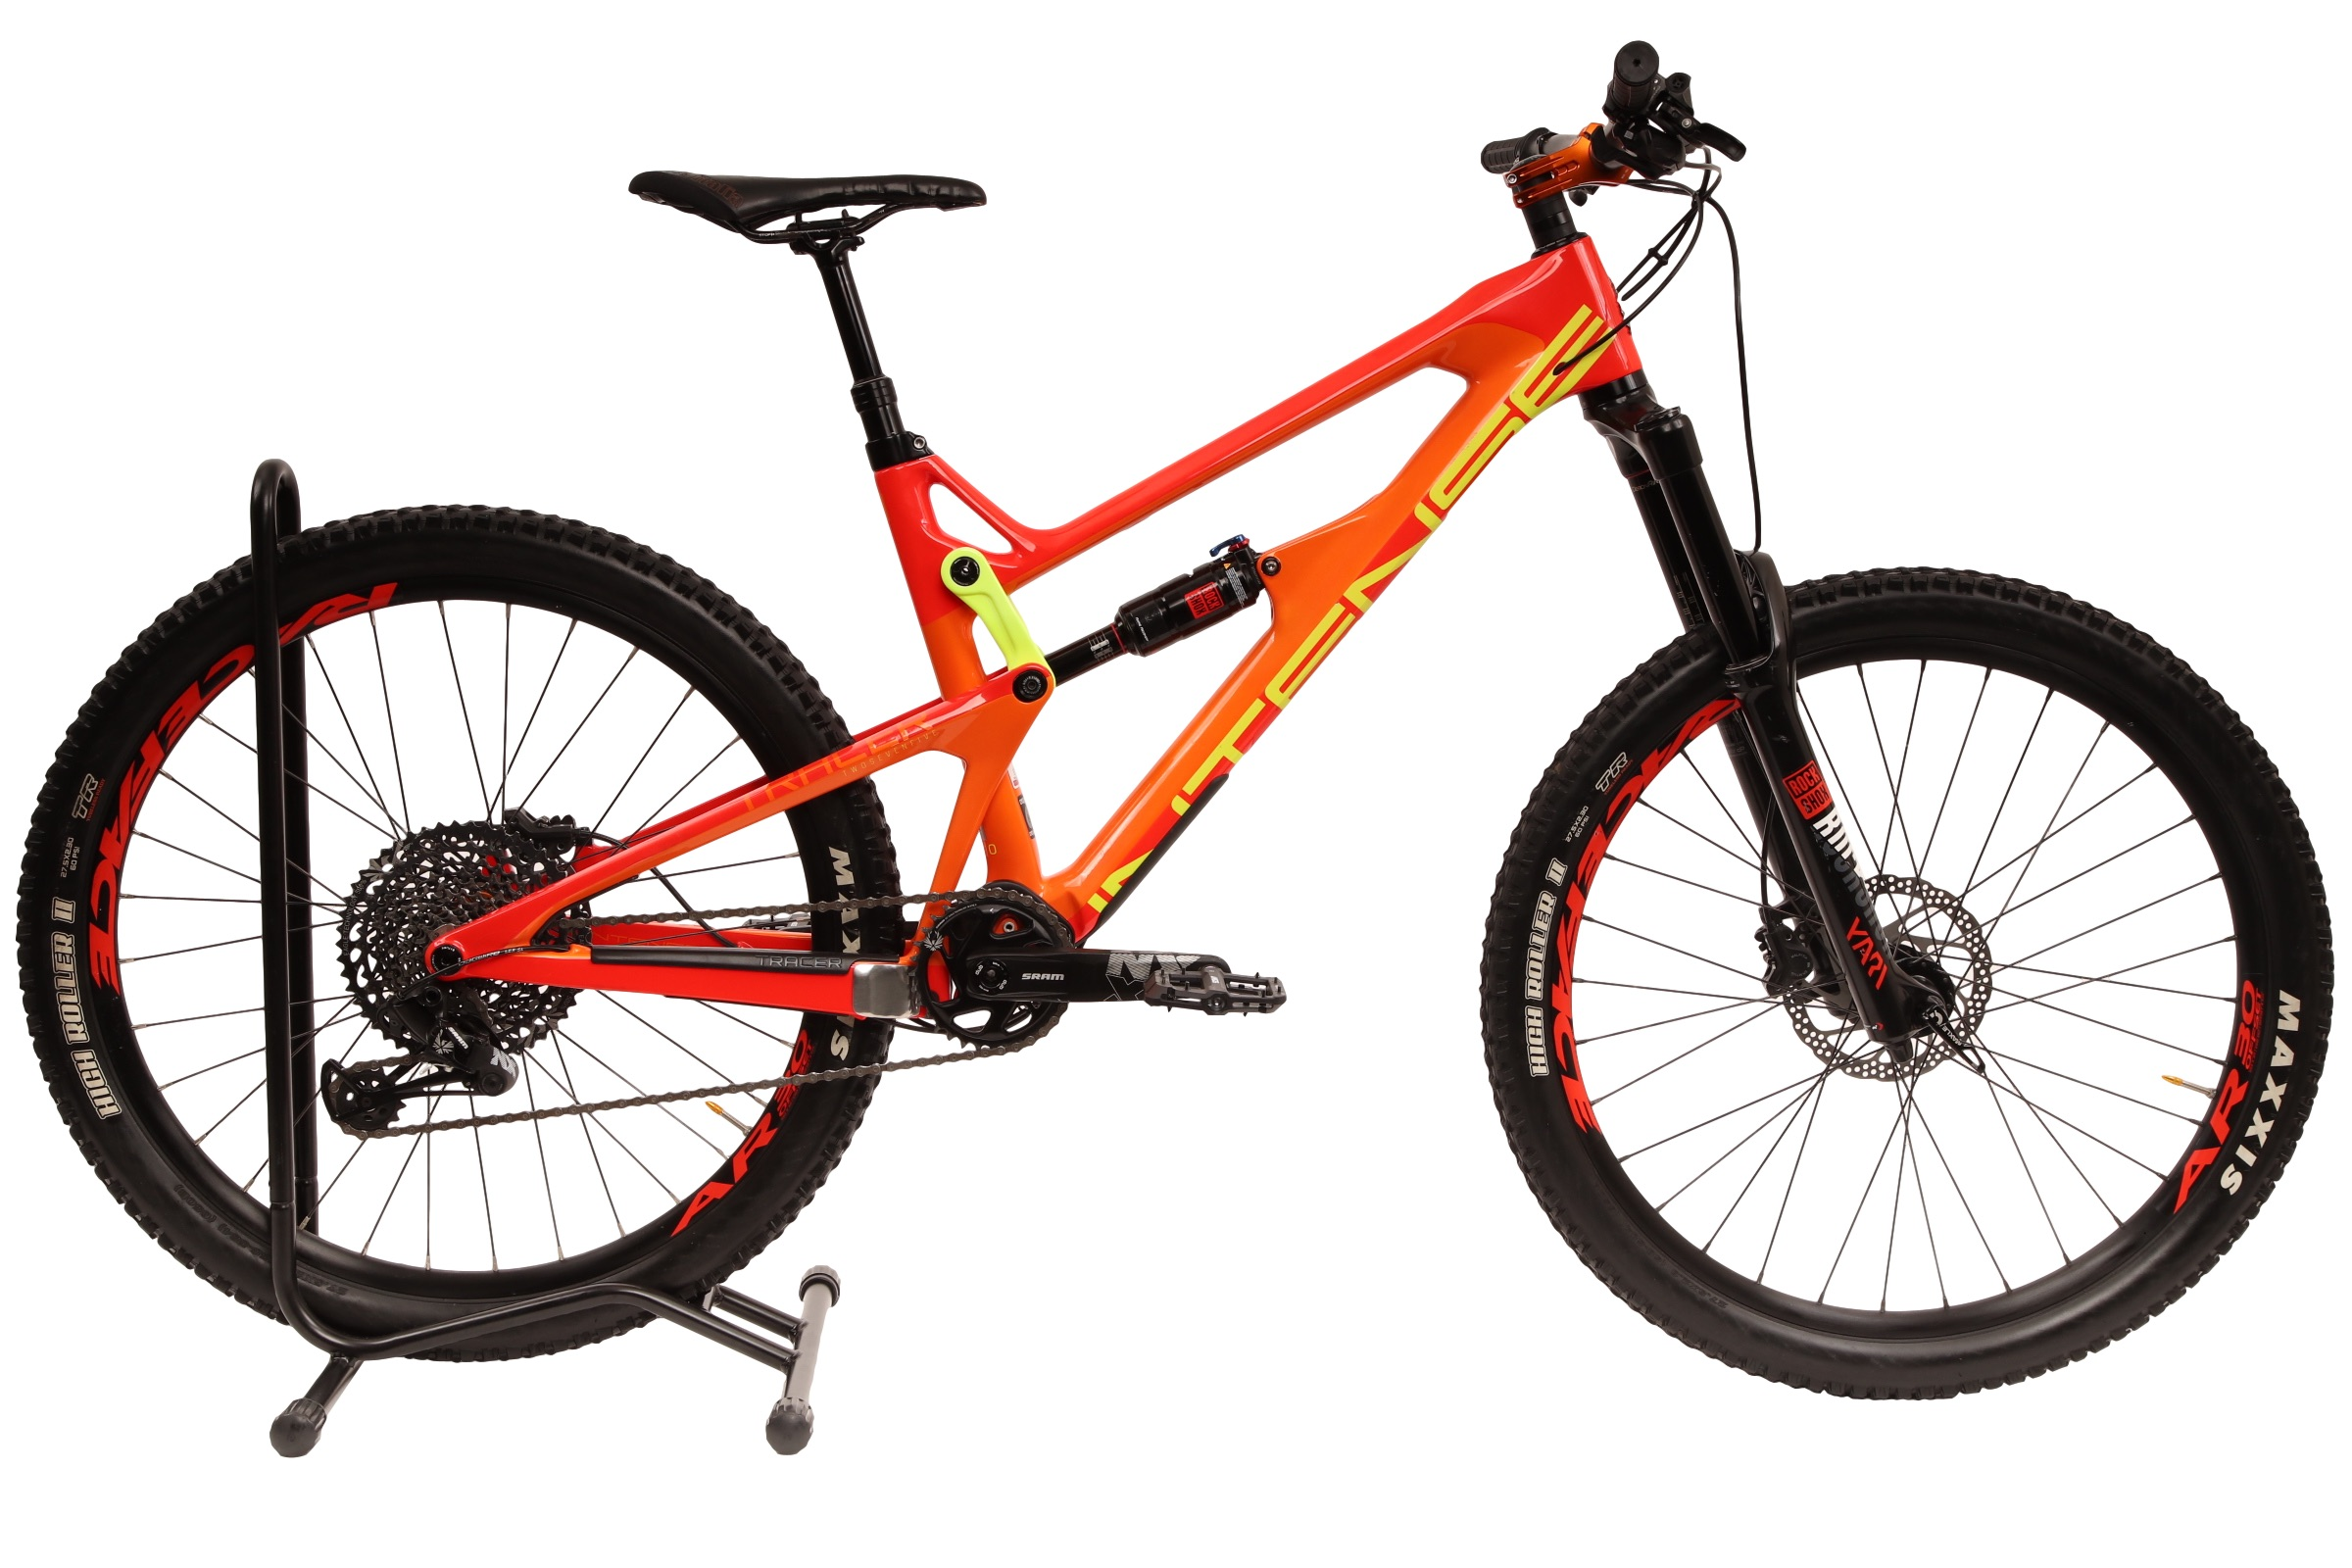 2017 Intense Tracer 275